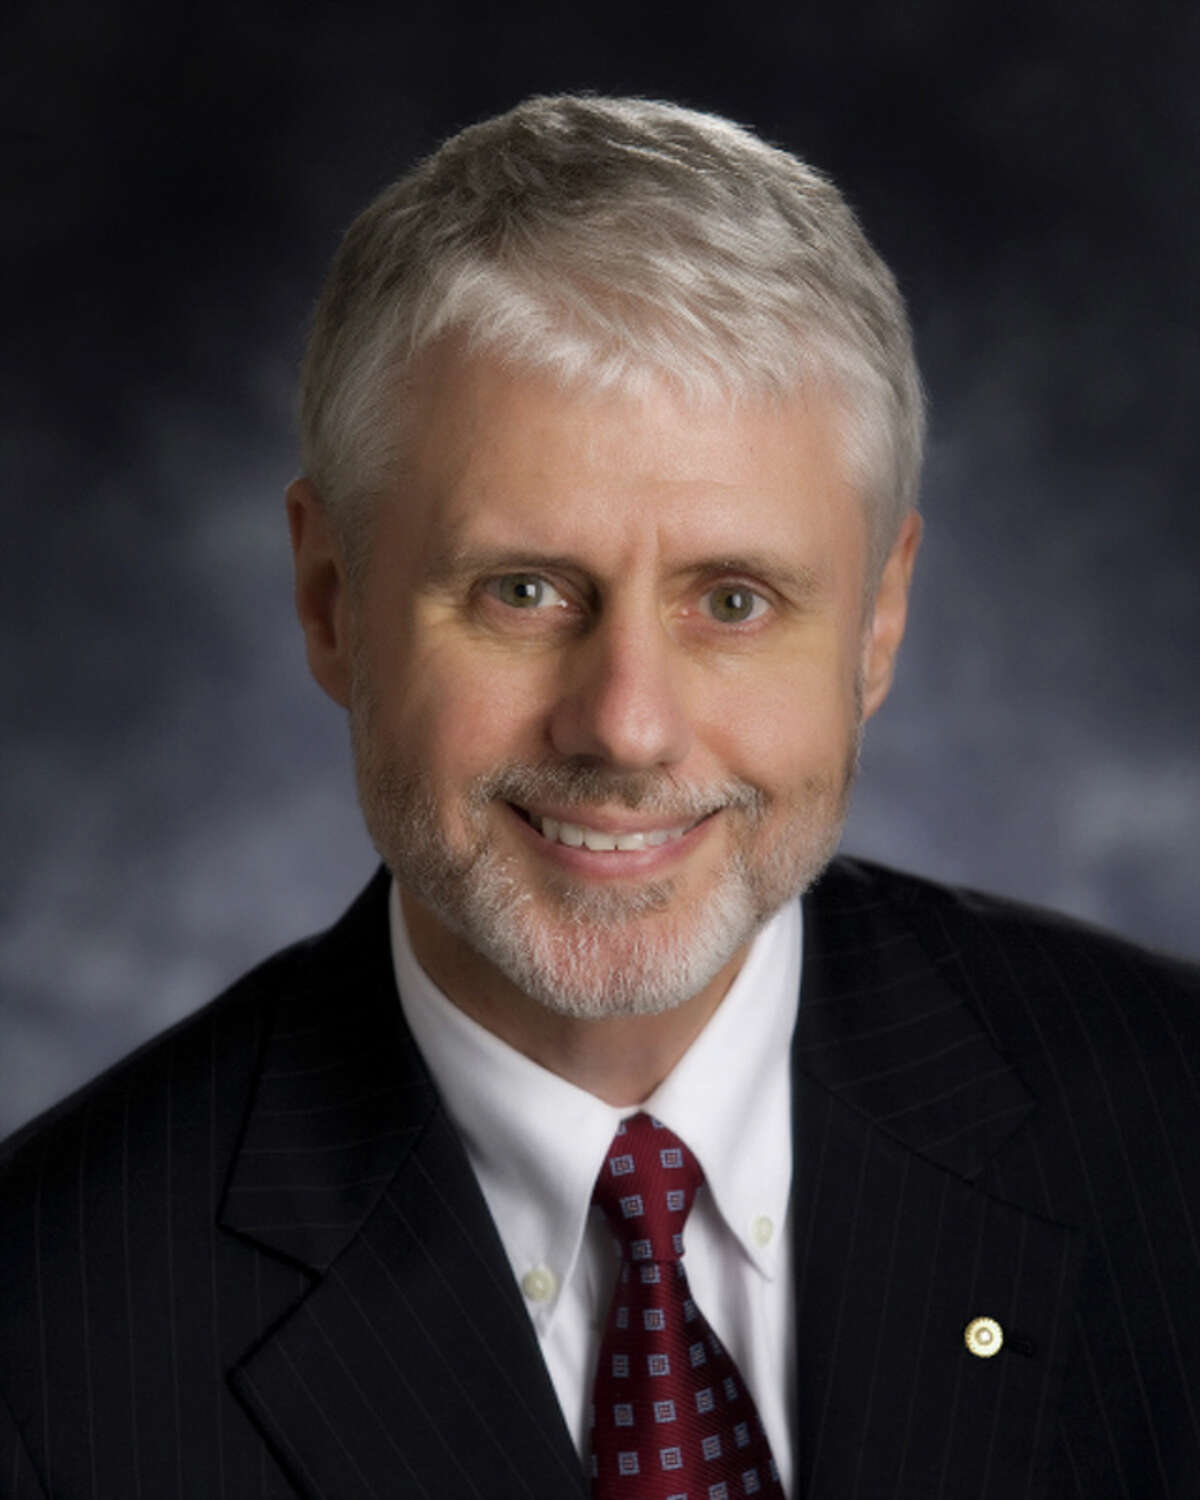 Phil Green has been named president of Cullen/Frost Bankers Inc.